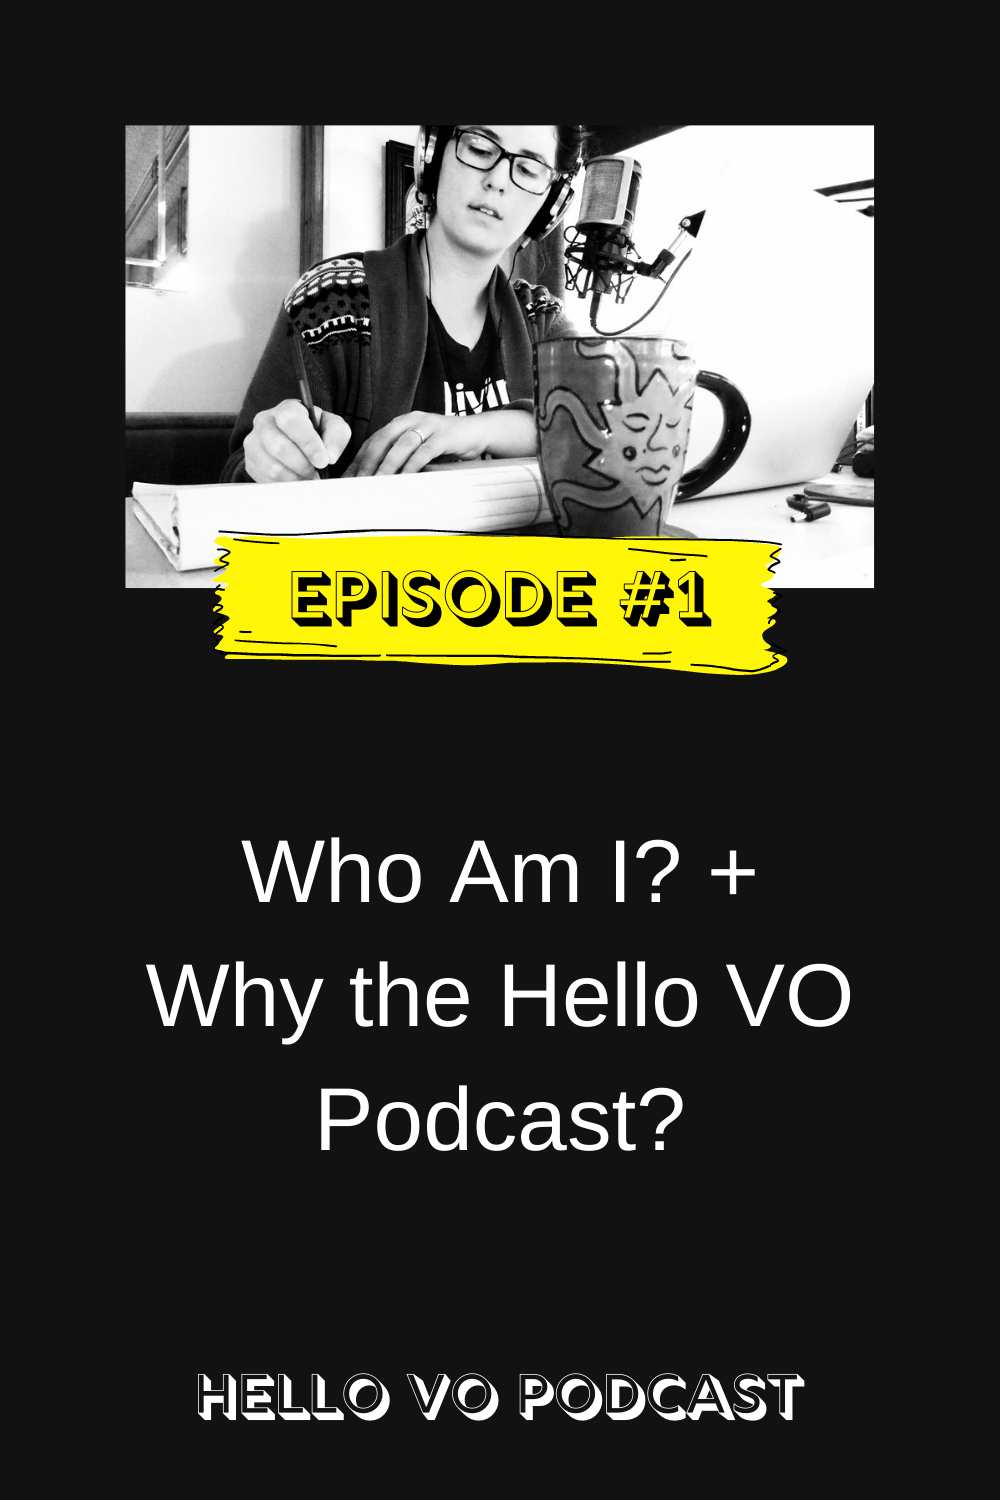 Hello VO Podcast Episode 1 - who the heck am I? why the Hello VO Podcast?